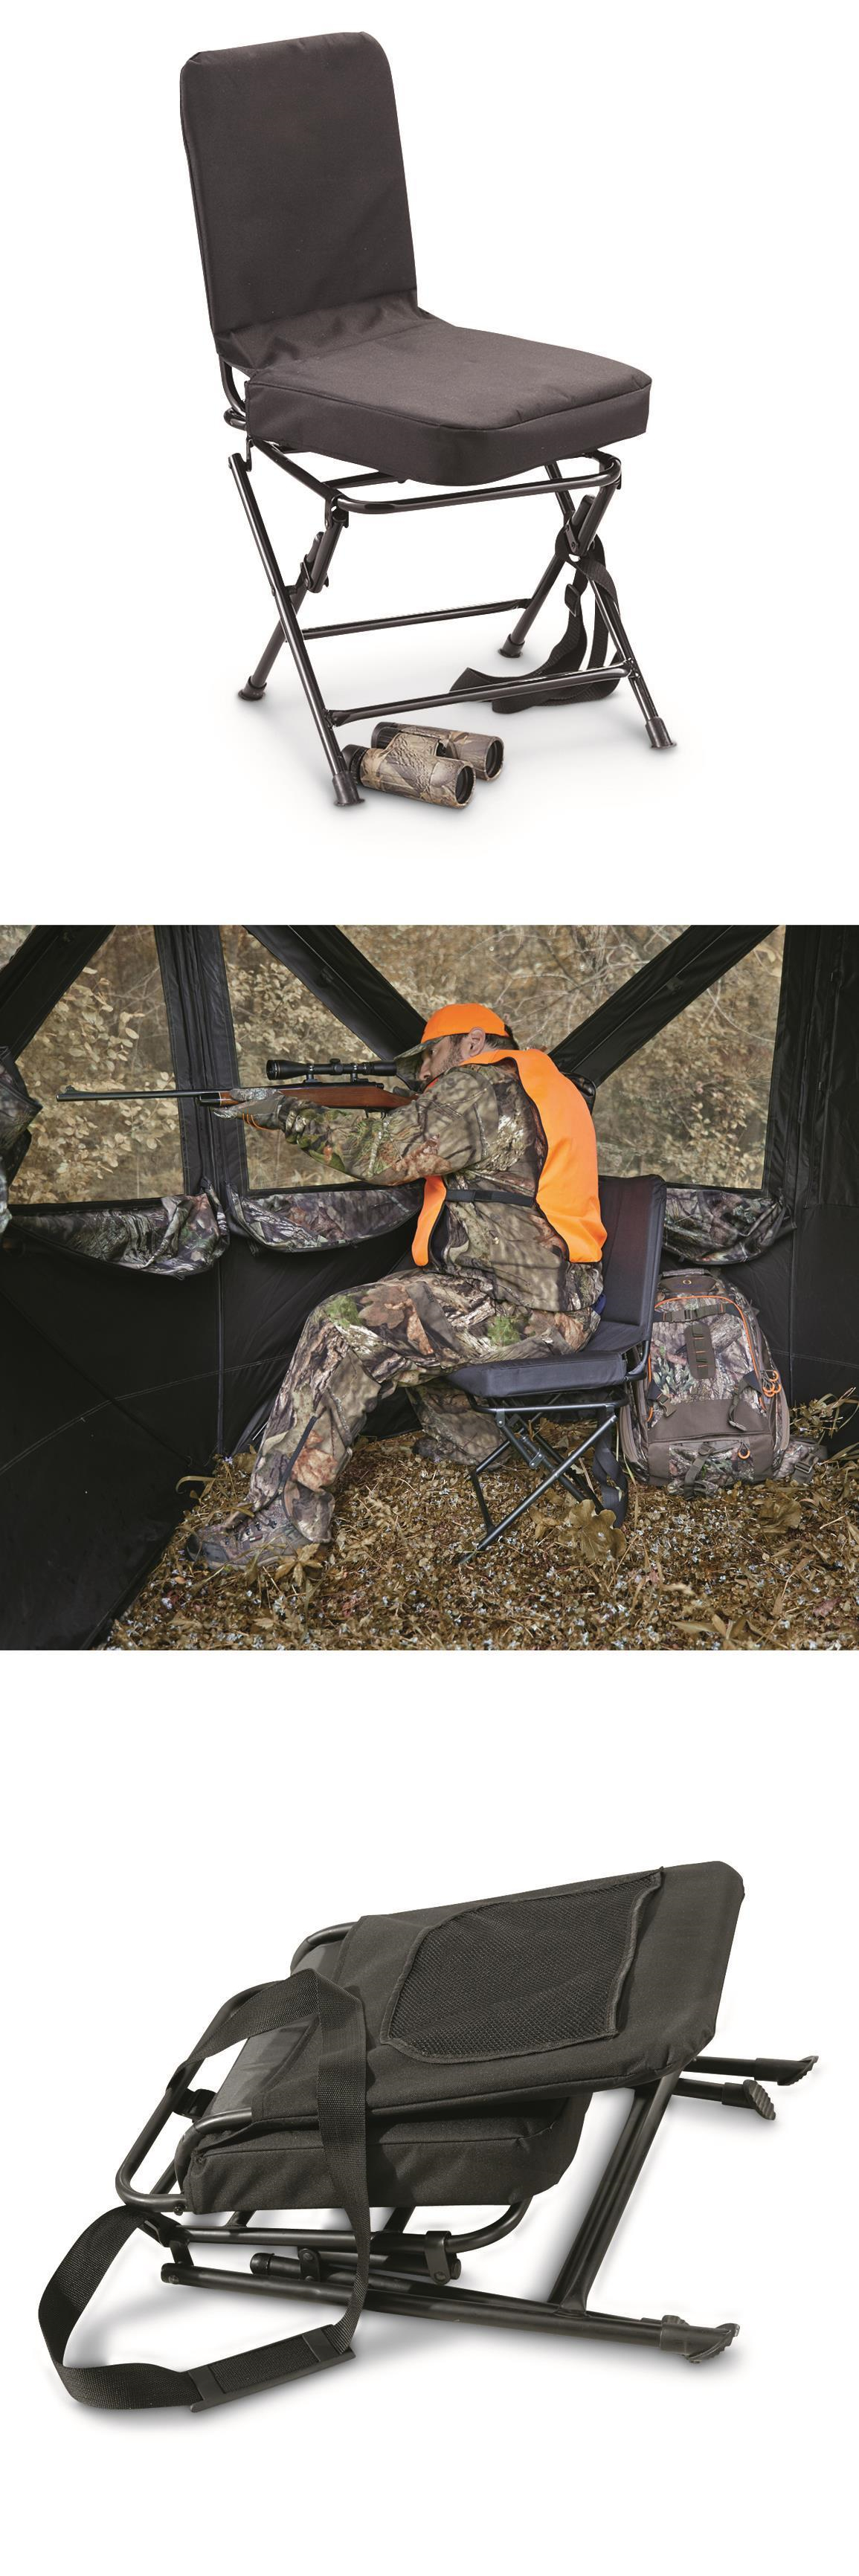 Seats and Chairs Oversized Swivel Hunting Blind Chair